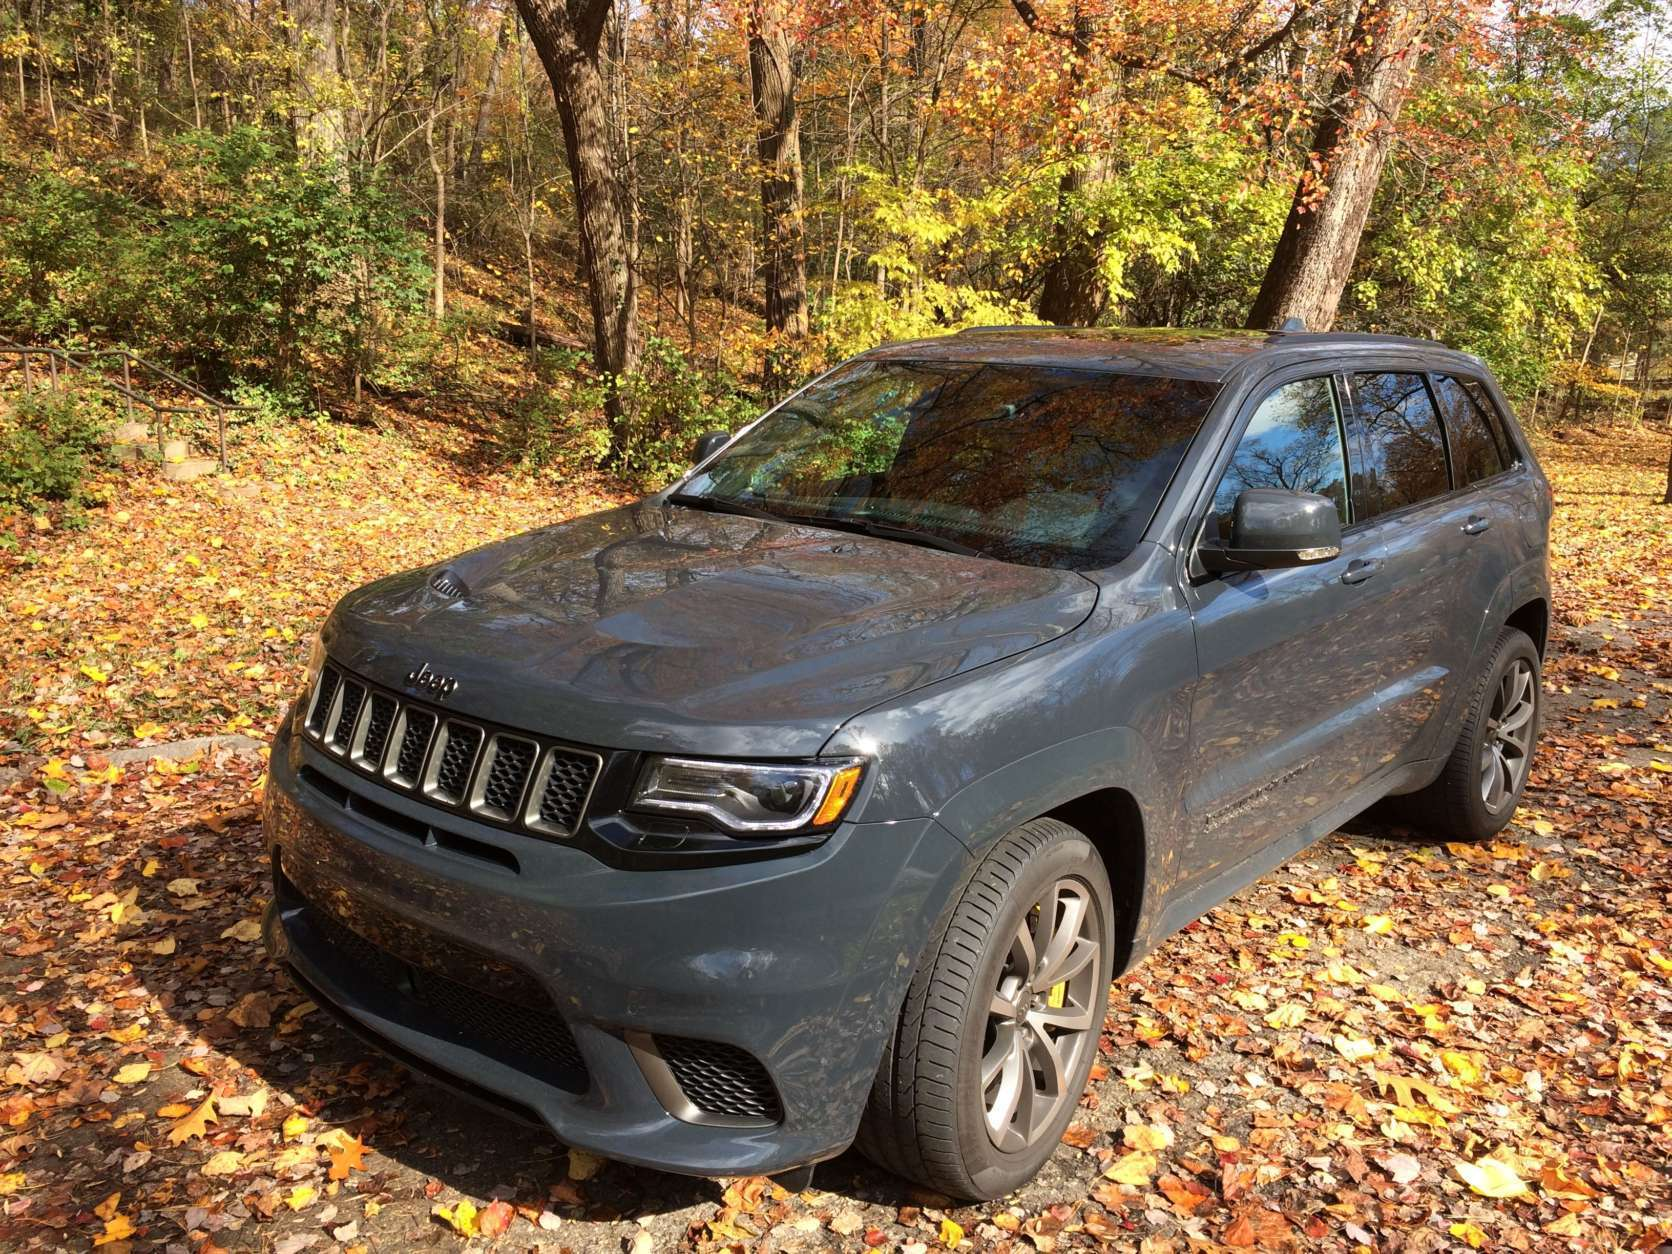 """Car guy Mike Parris drove the fully loaded $99,965 2018 Jeep Grand Cherokee for a week. He called it the most powerful SUV around, """"the car crazy people drive."""" (WTOP/Mike Parris)"""